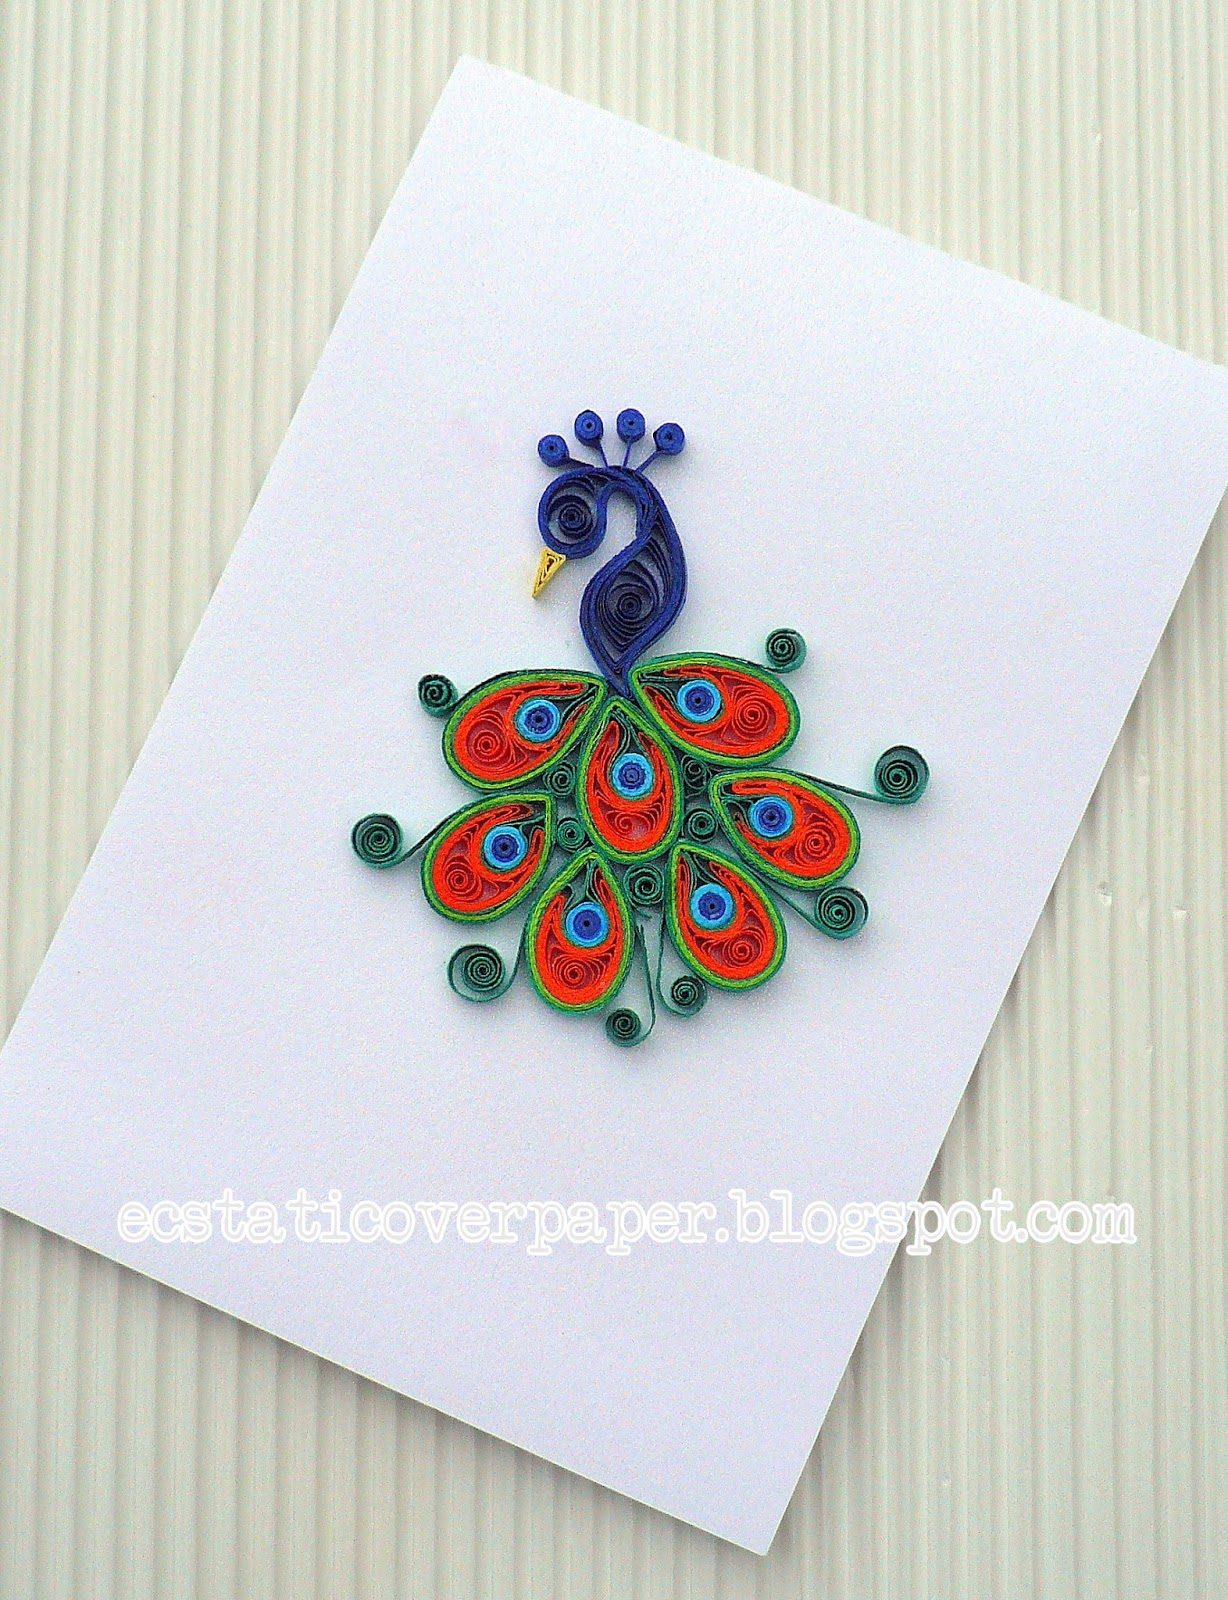 1000 images about quilling patterns on pinterest for Quilling patterns for beginners